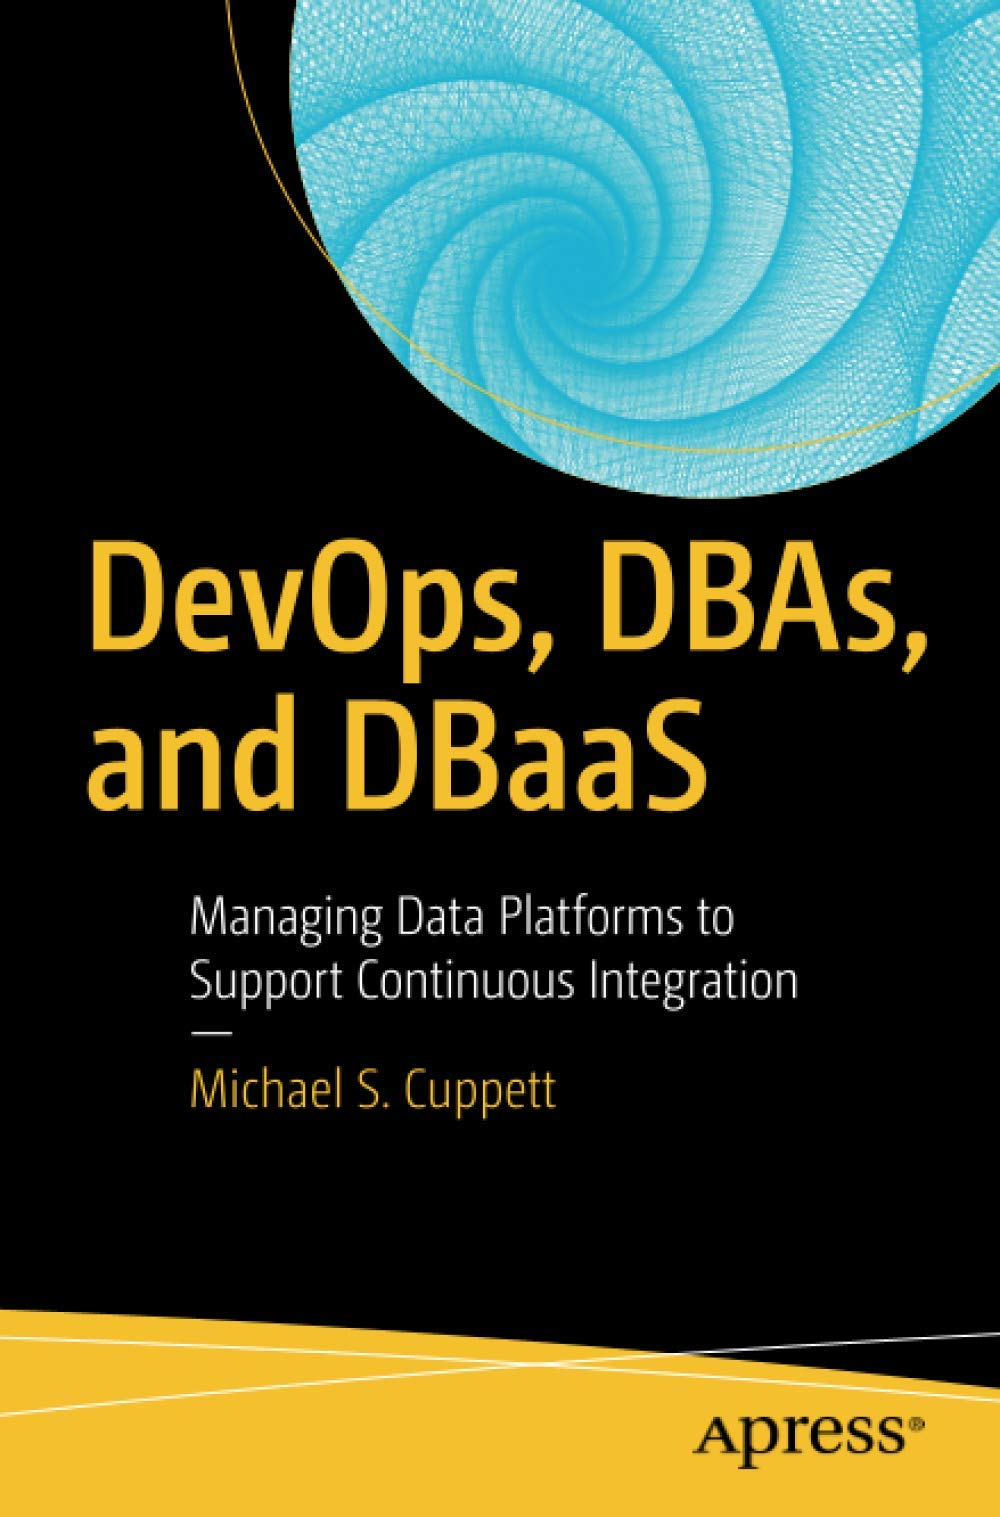 DevOps, DBAs, and DBaaS: Managing Data Platforms to Support Continuous Integration